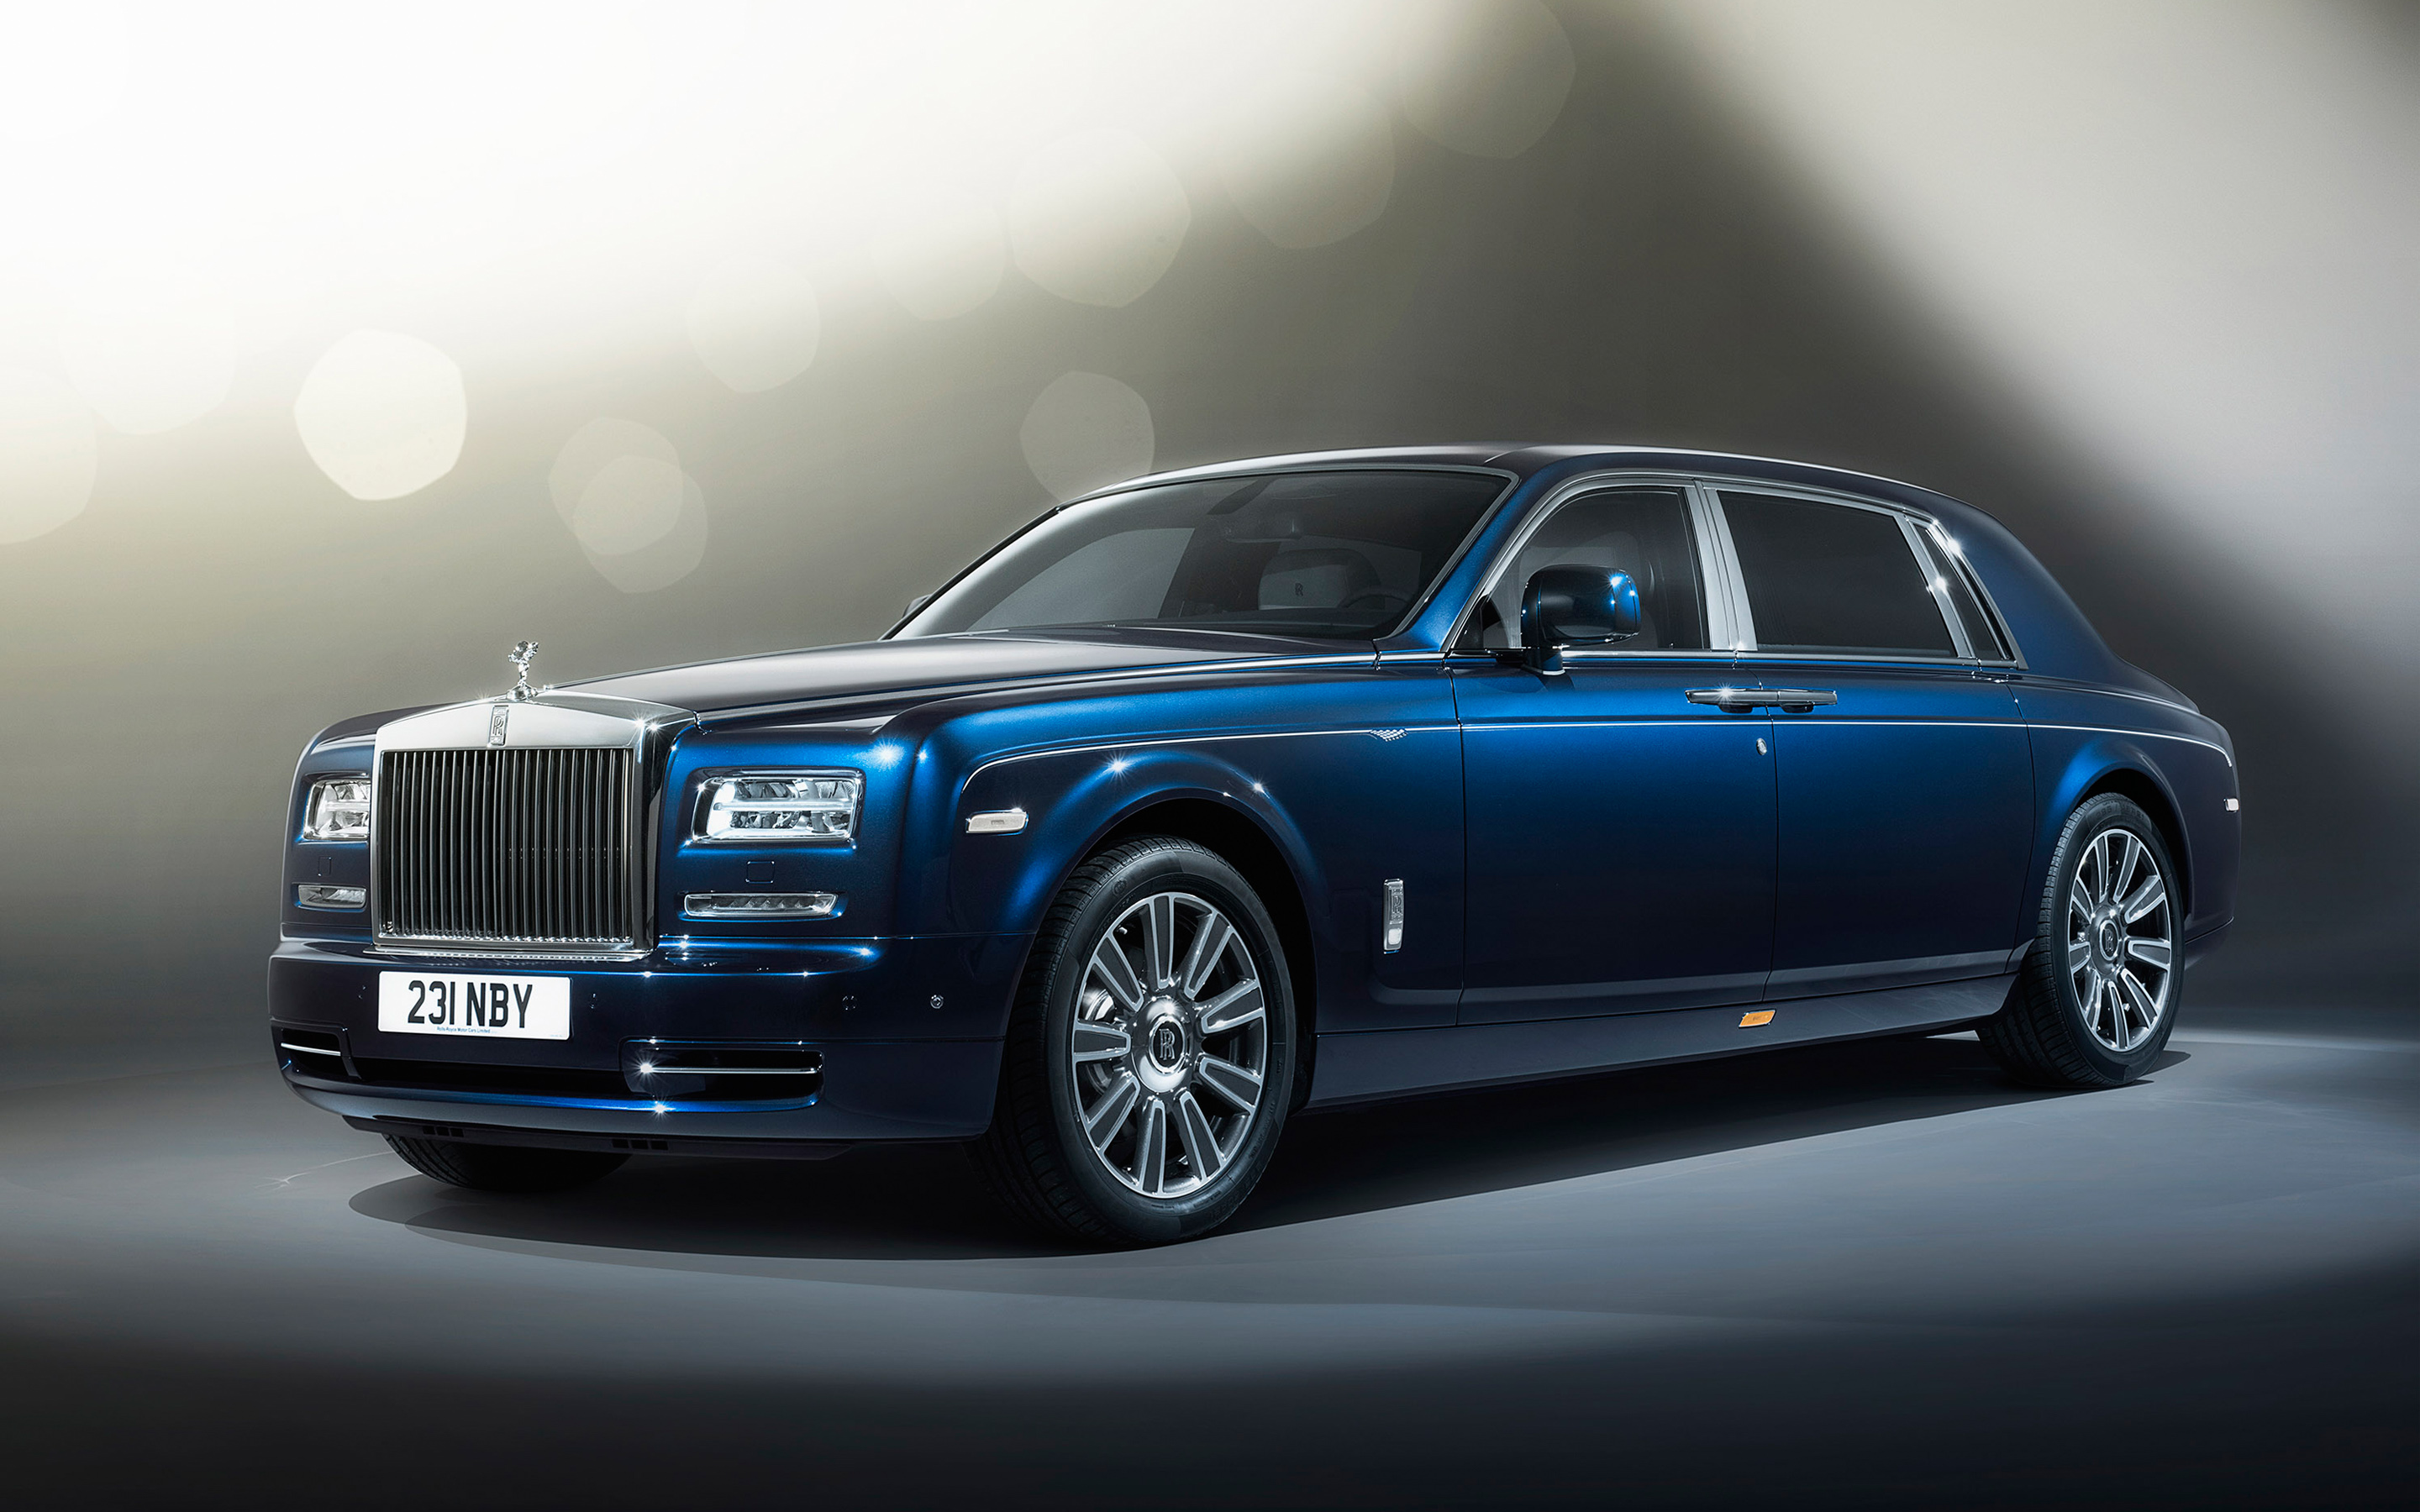 2015 Rolls Royce Phantom #4